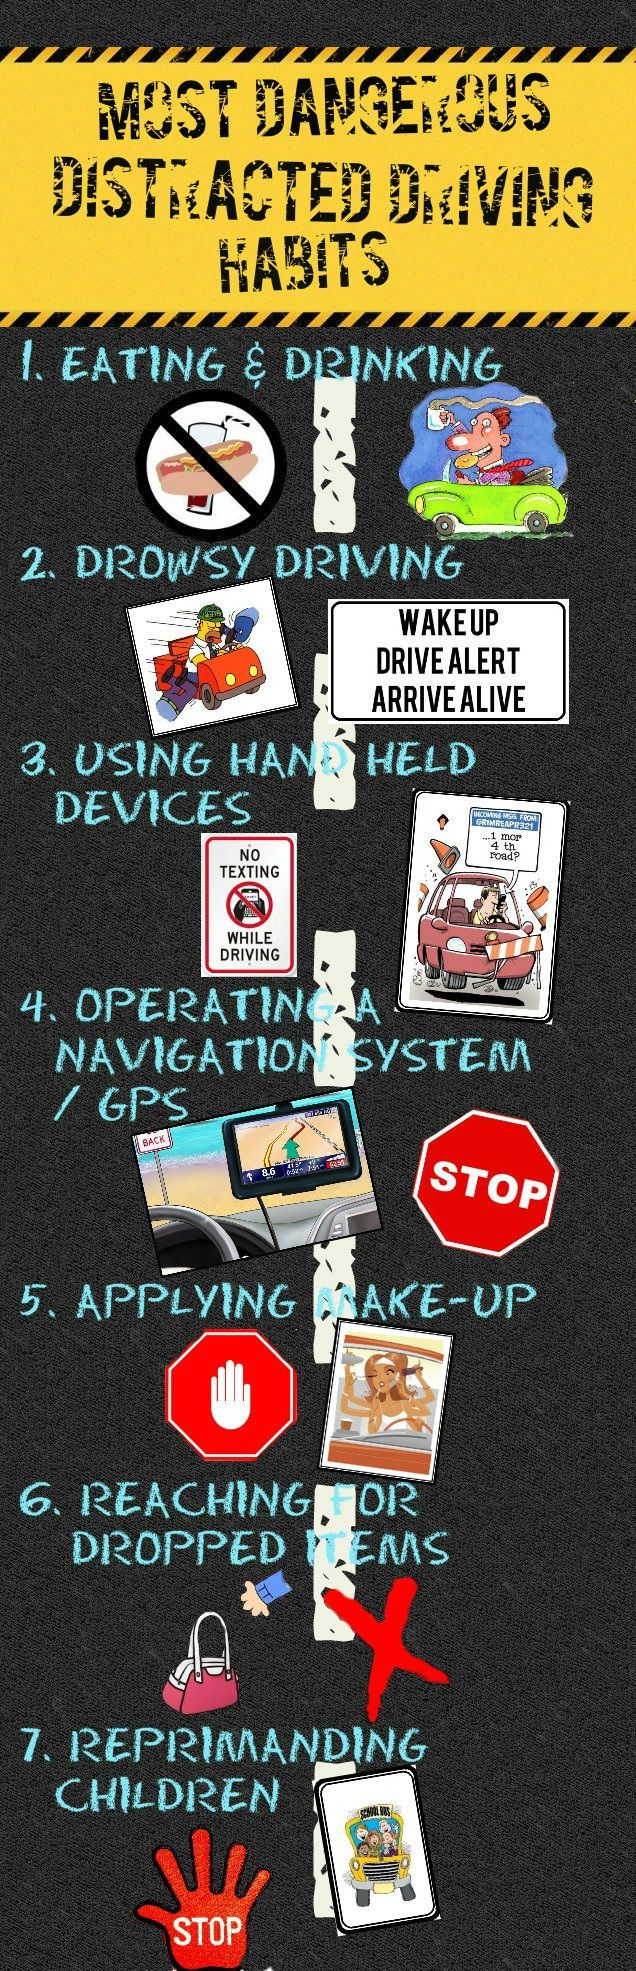 the best driving safety ideas safe driving tips most dangerous distracted driving habits distracteddriving 888bailbond com